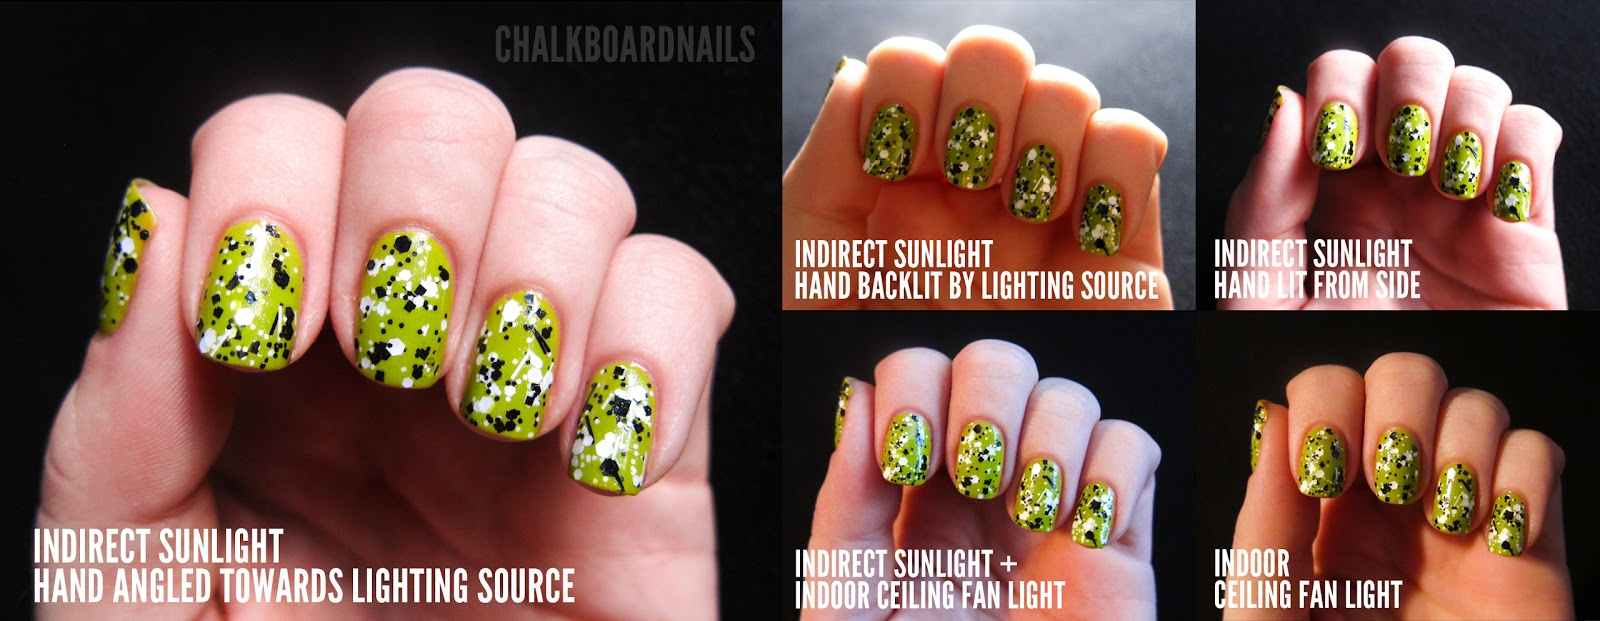 Nail Photography Basics (Part I) | Chalkboard Nails | Nail Art Blog